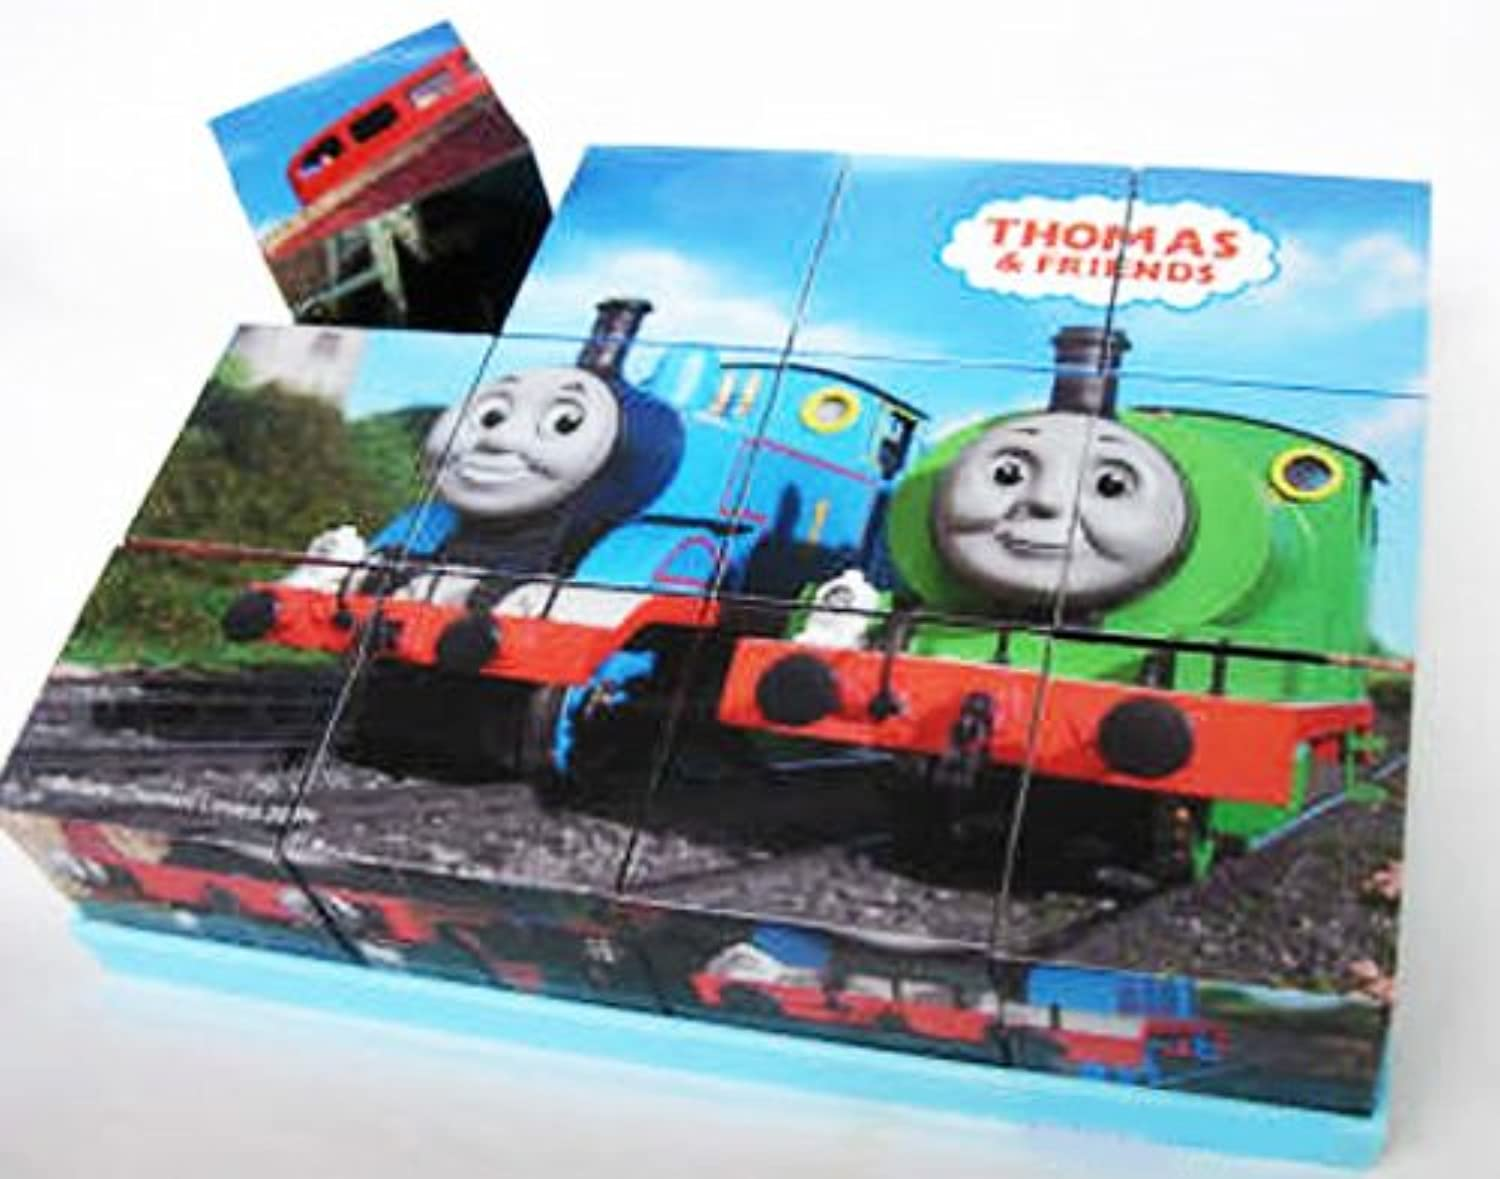 Thomas & Friends 3D Wood Puzzle   6 in 1 Puzzle